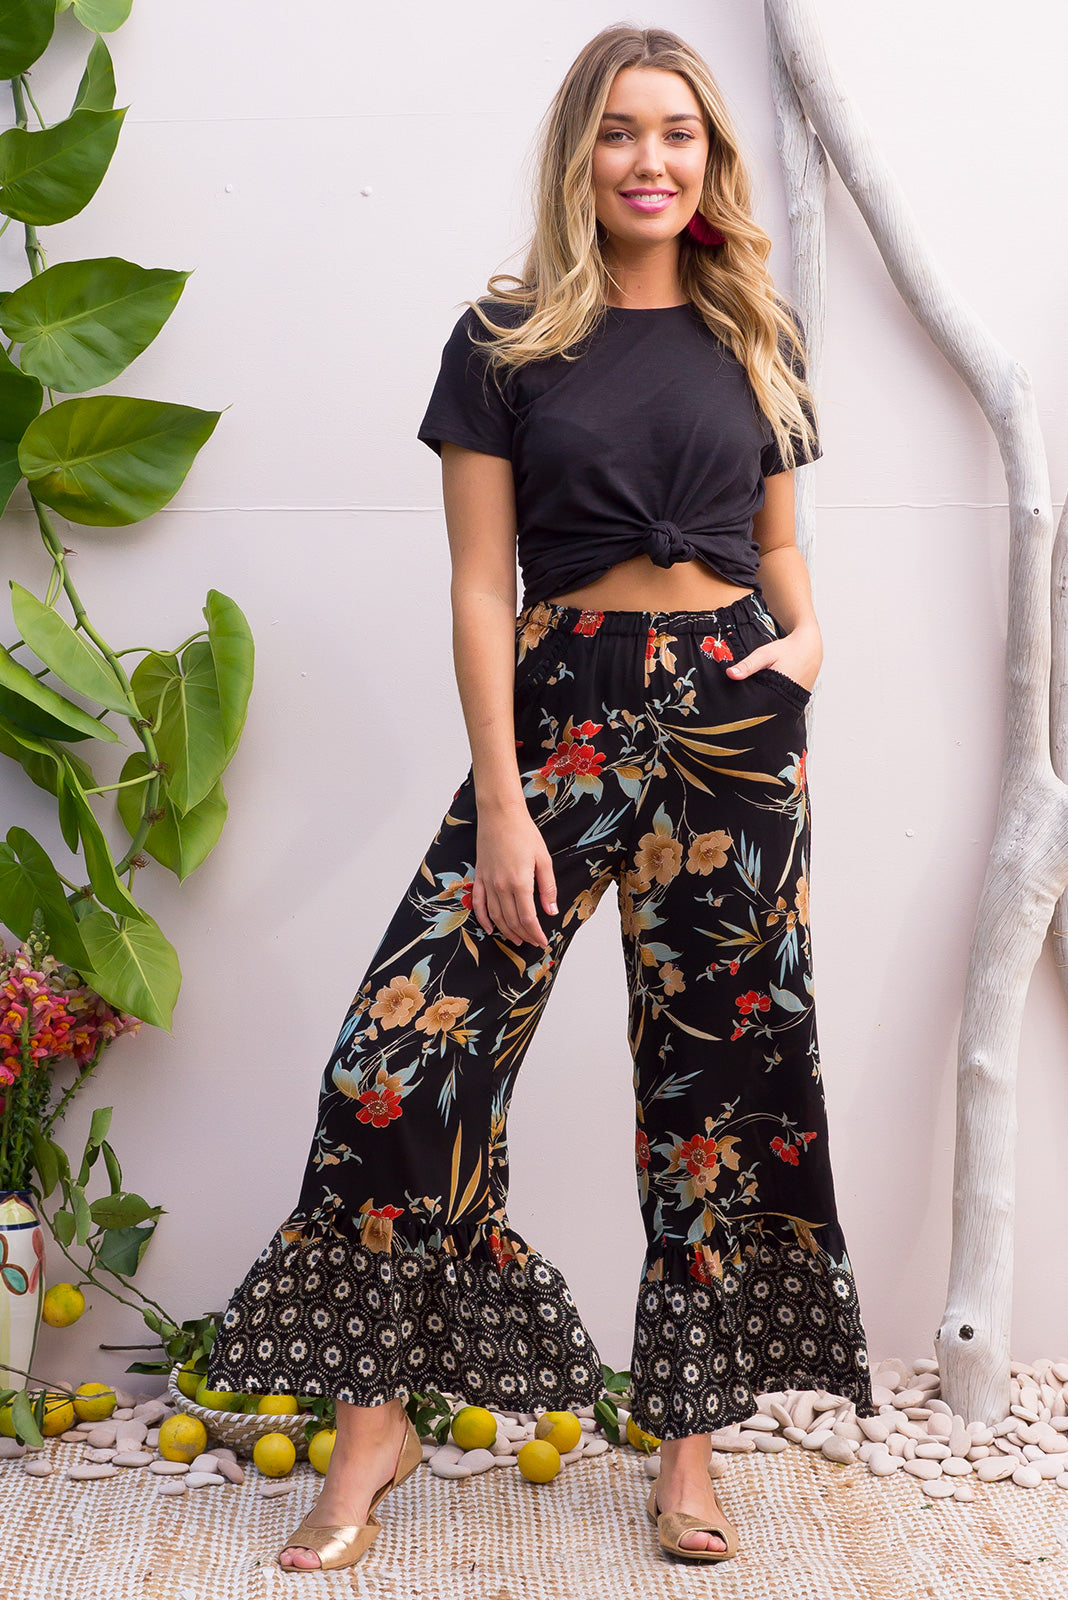 Wandering Pants Tropics Noir  feature a slim leg with a wide frill around the hem for a retro vintage style, the black tropical inspired design is printed onto woven rayon